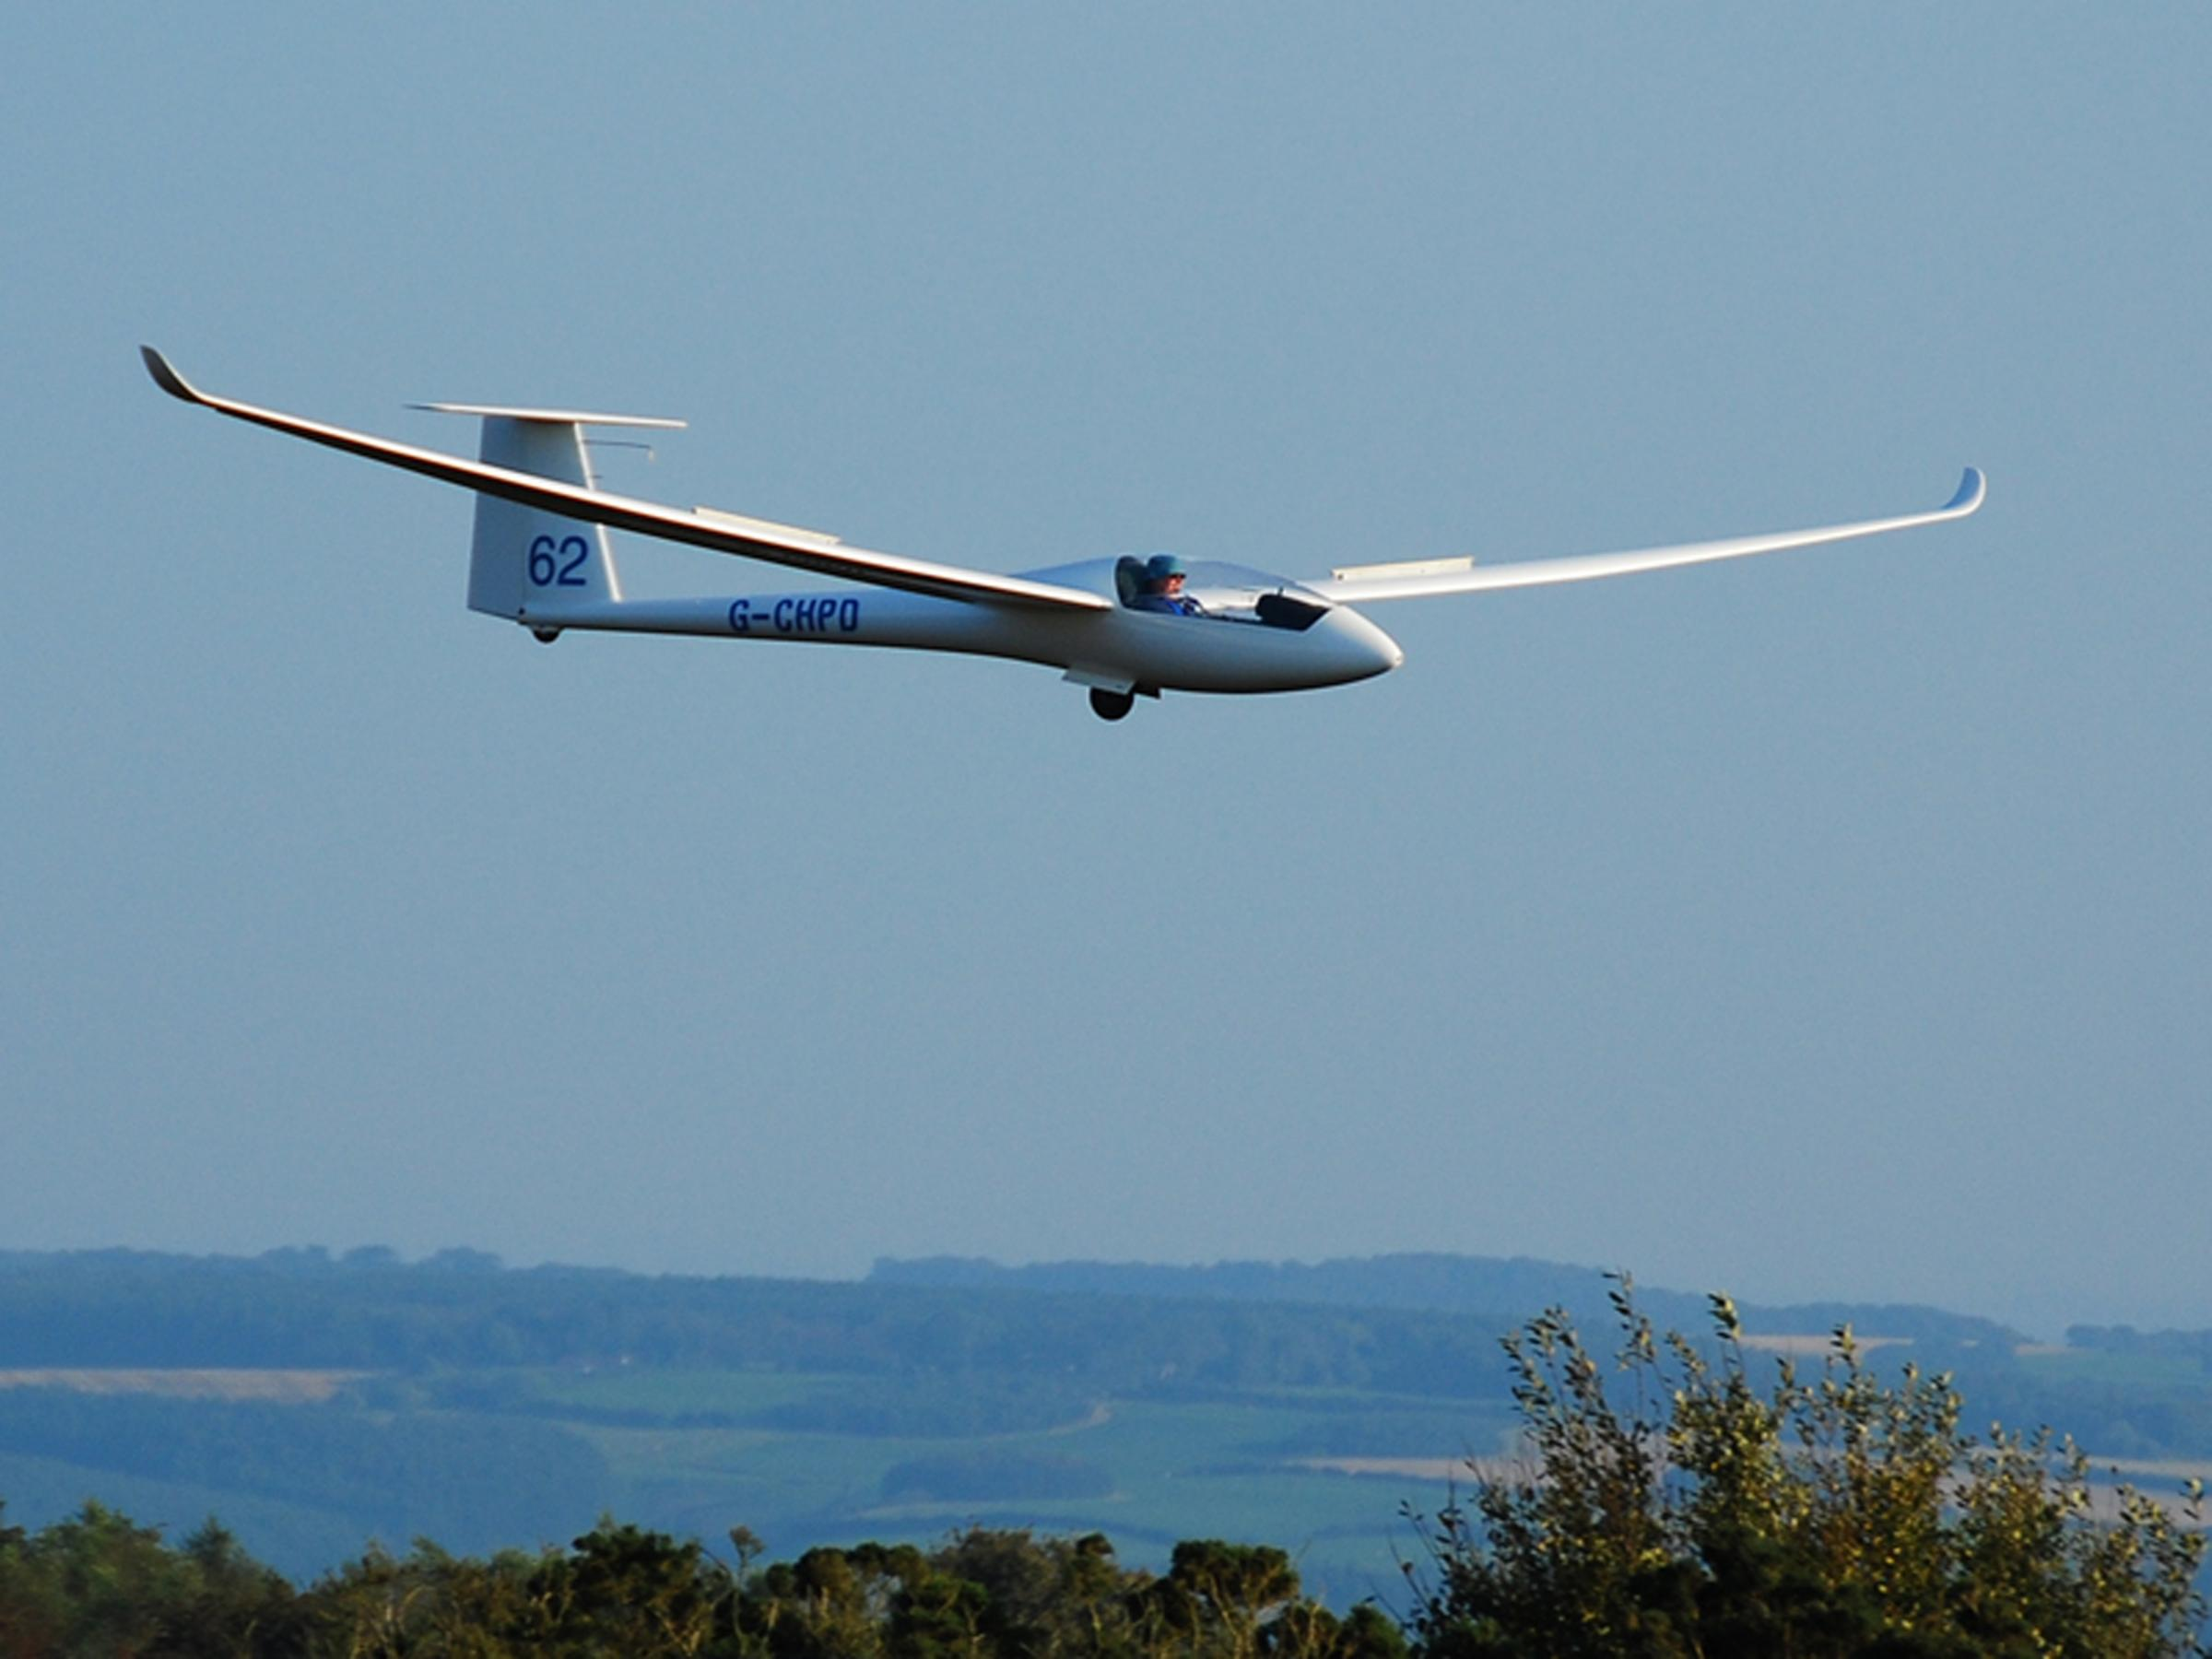 The Wolds Gliding Club